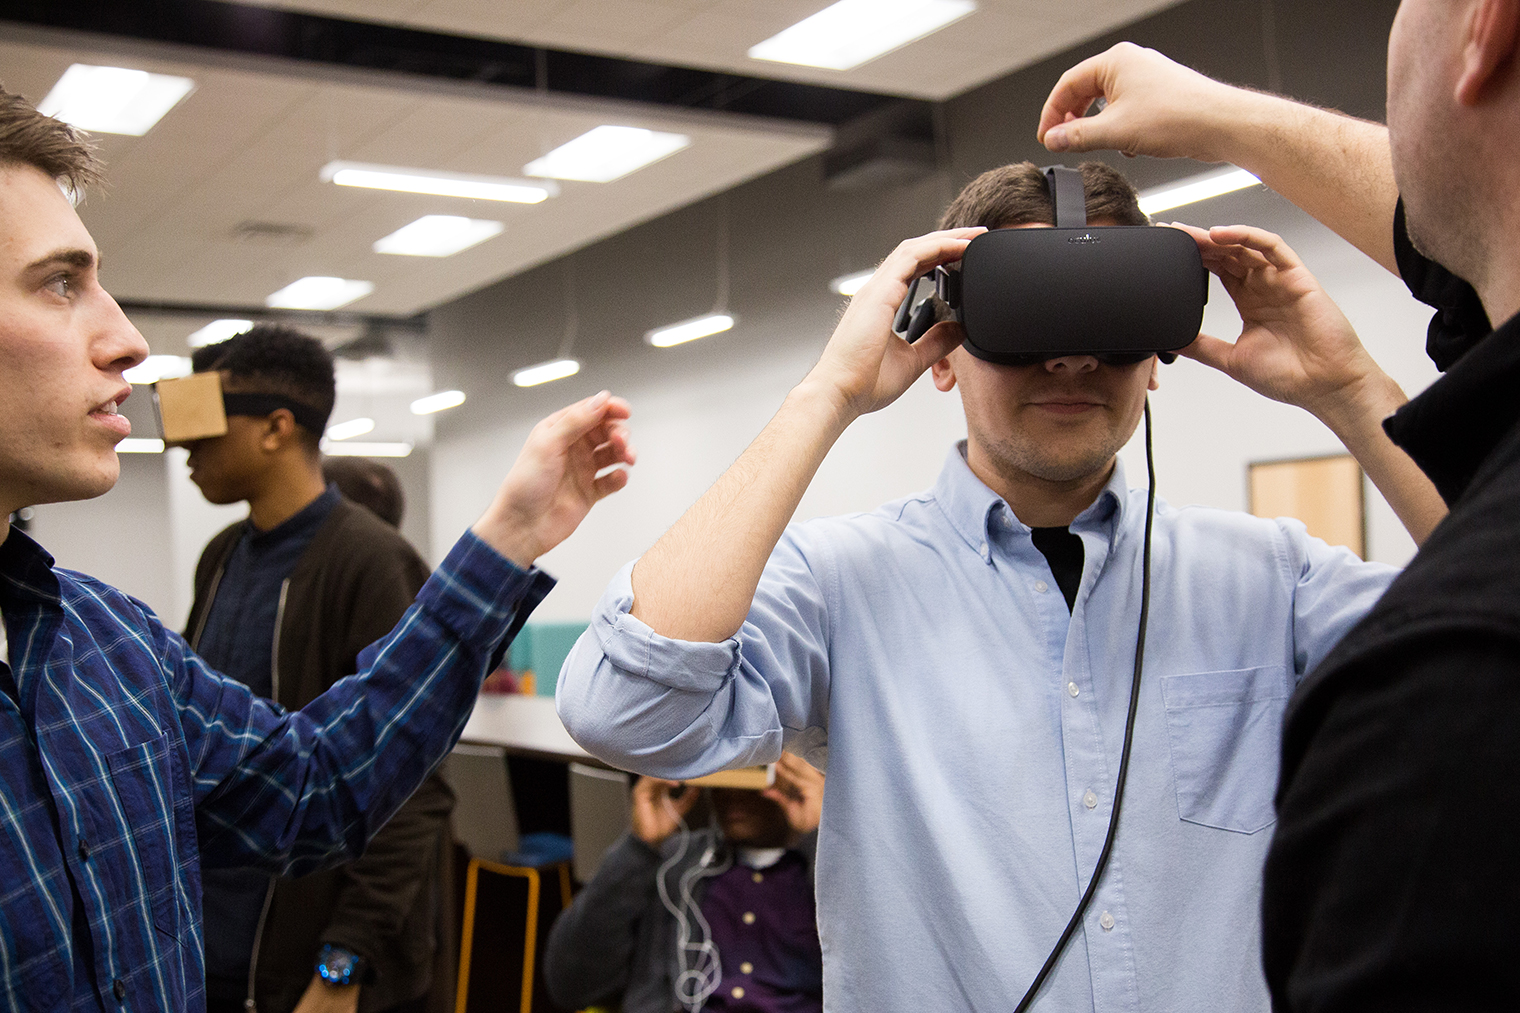 Senior digital media student Jeremie Grandemange tries on a VR headset. (Photo by Leah Seavers)